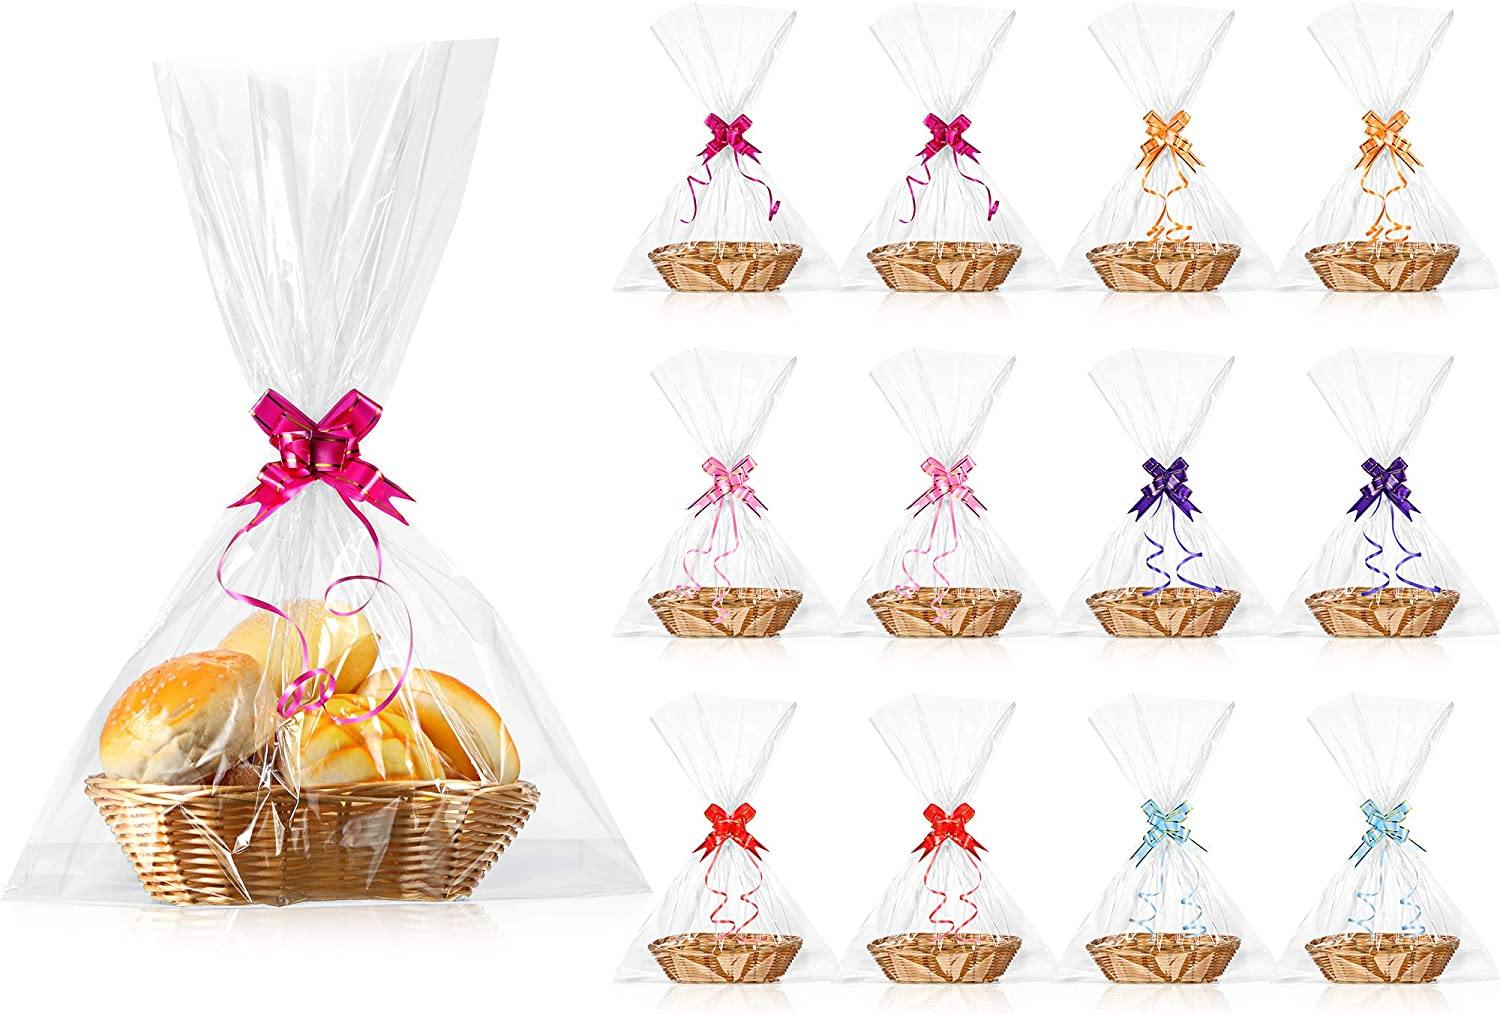 12 Pieces Oval Basket Food Storage Basket Woven Empty Basket Fruit Basket 9 x 6 x 2.25 Inches Gift Baskets with 60 Colorful Pull Bows and 30 Clear Gift Bags for Kitchen, Restaurant, Wrapping Gifts